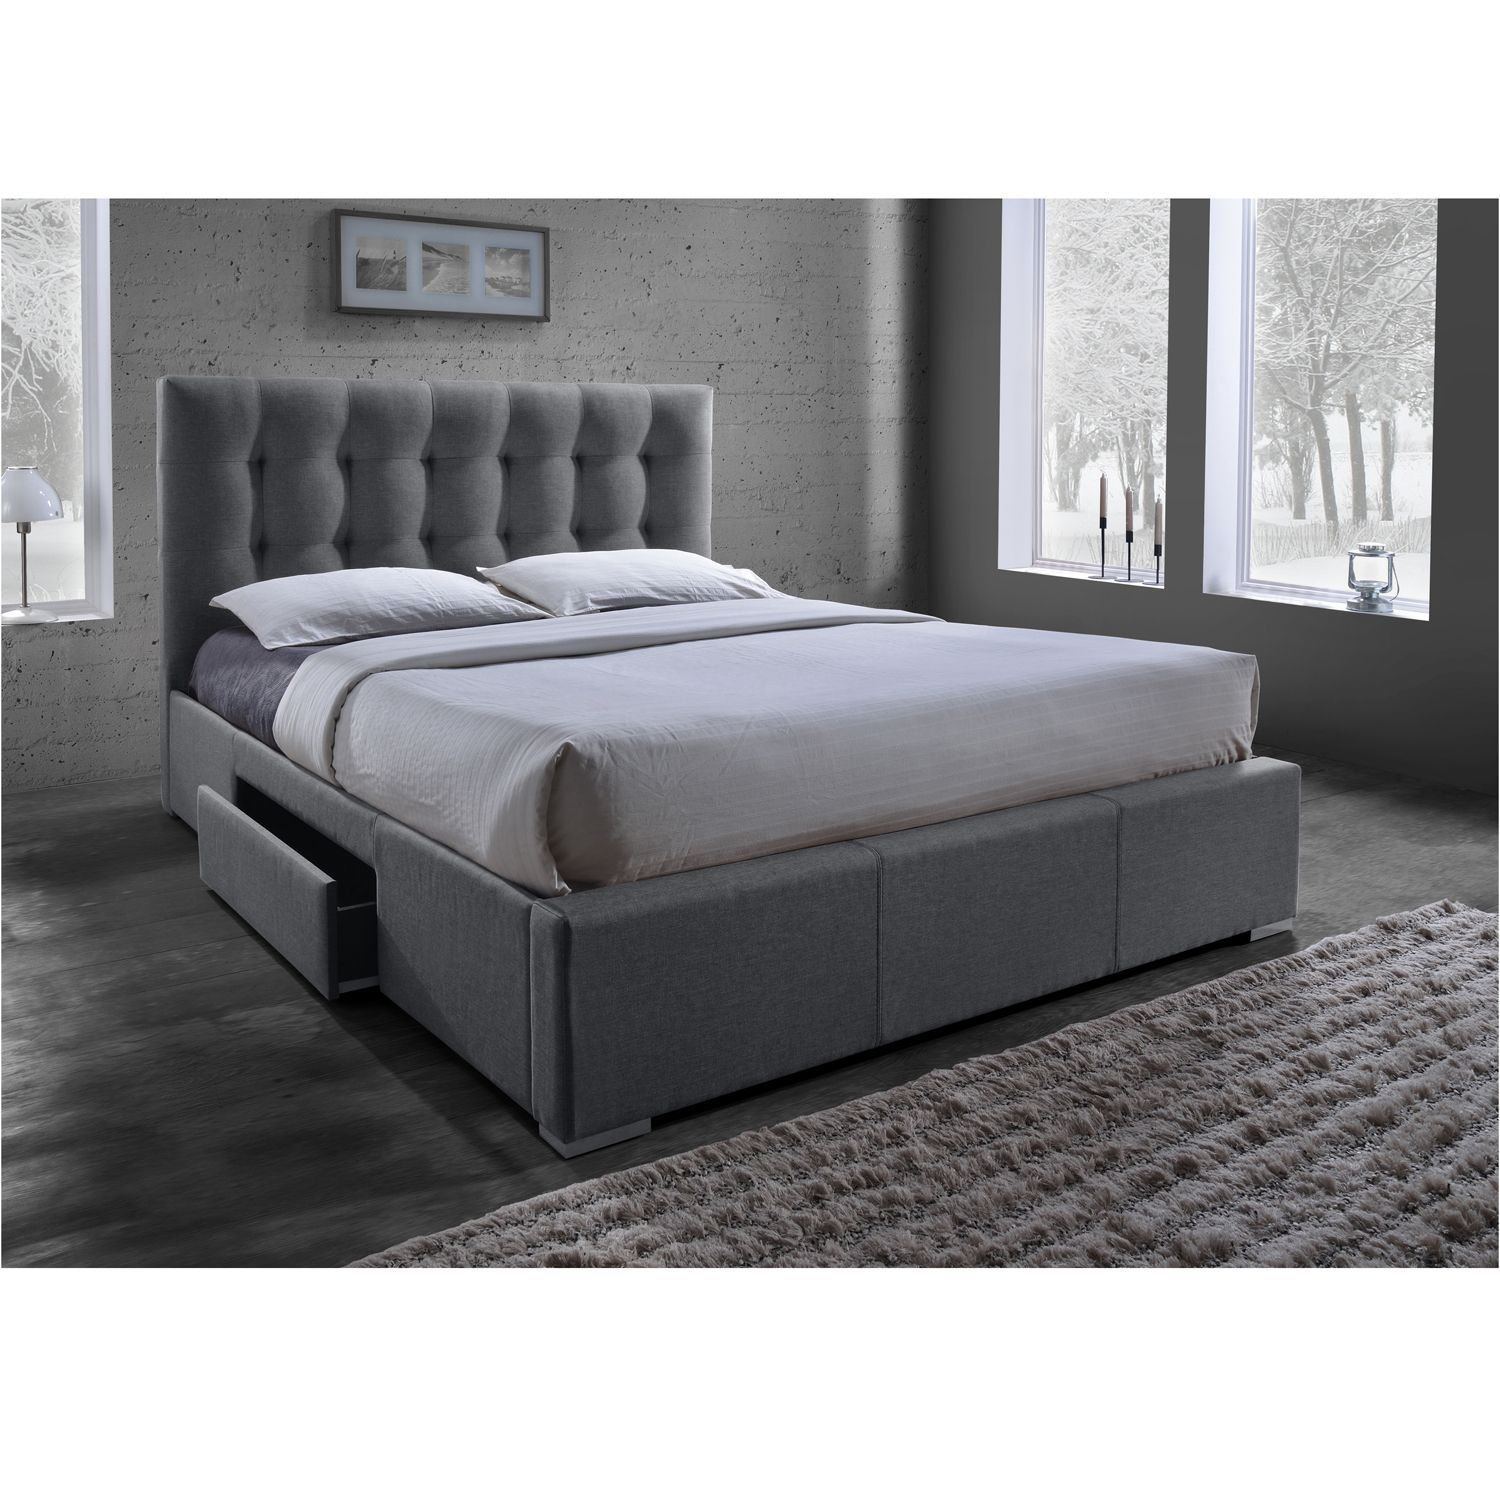 Sarter Contemporary Grid Tufted Grey Fabric Upholstered Storage Bed With 2 Drawer Storage Bed Bedroom Furniture Beds Upholstered Panel Bed